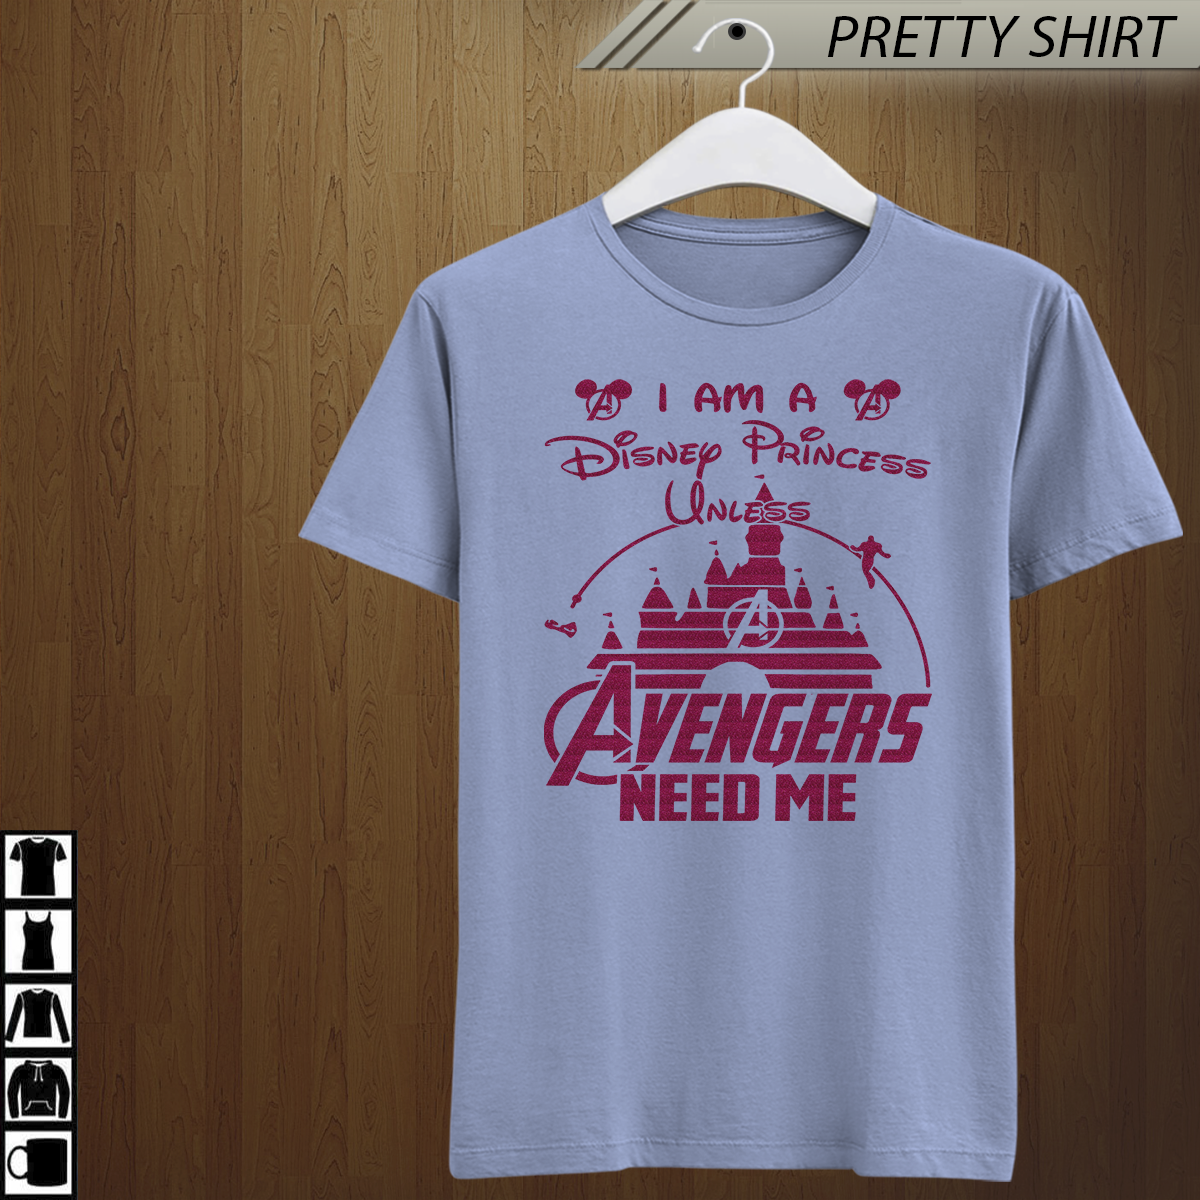 I Am A Disney Princess Unless Avengers Need Me Pink rose Shirt, Game Of Throne , summer is coming , Avenger Shirt , Marvel Shirt ,Marvel Avengers